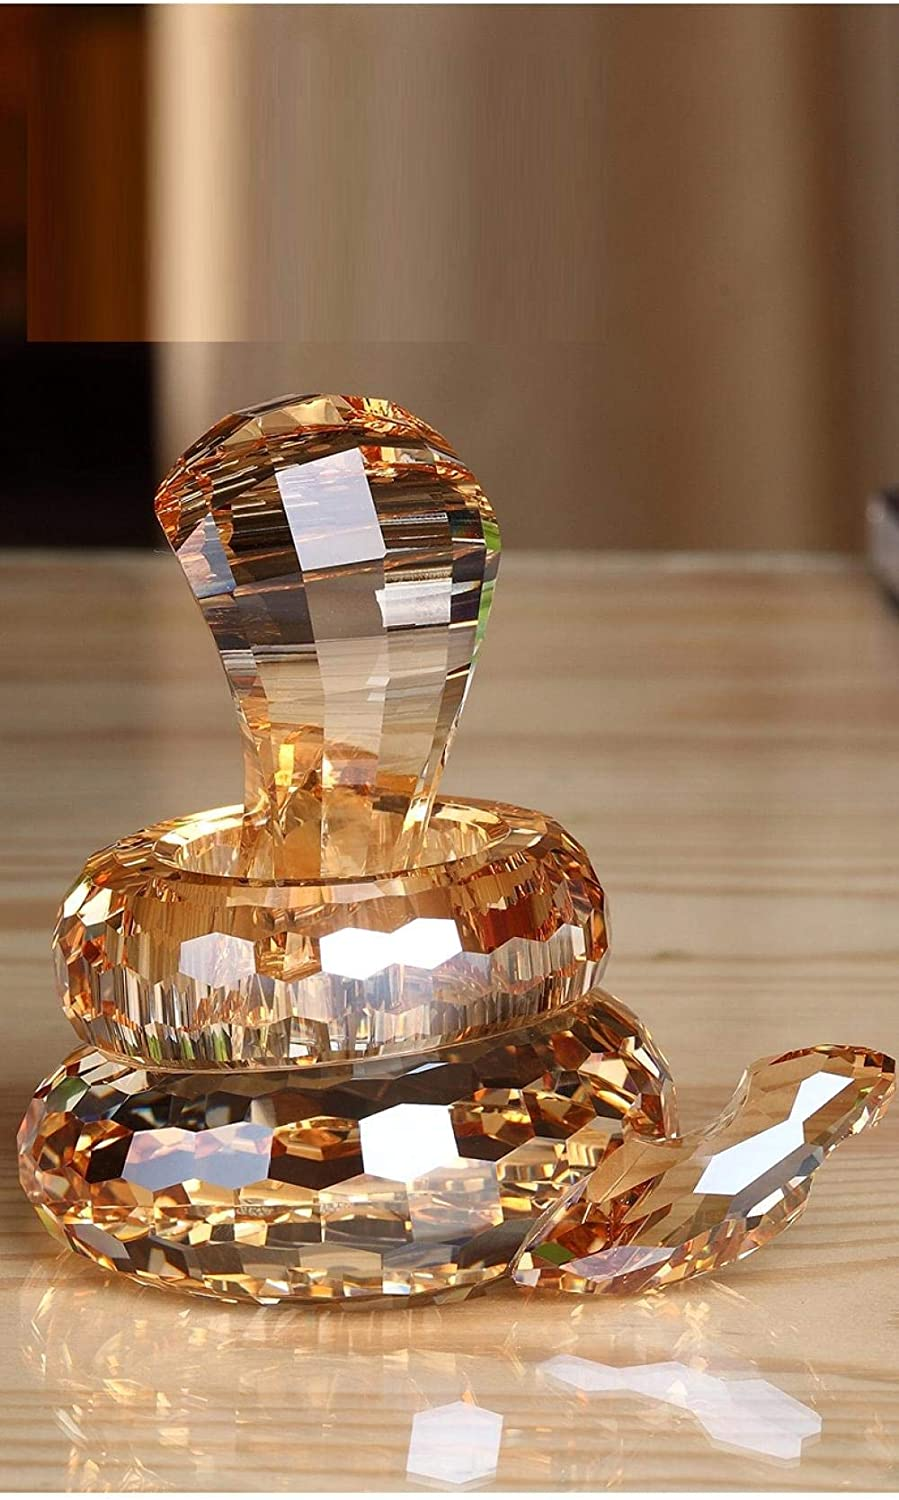 LUISONG YH-KE Crafts Glass Statue Crystal Figurines Ornaments Car Decoration Crystal Snake Creative Car Car Decoration Home Supplies Jewelry Decoration